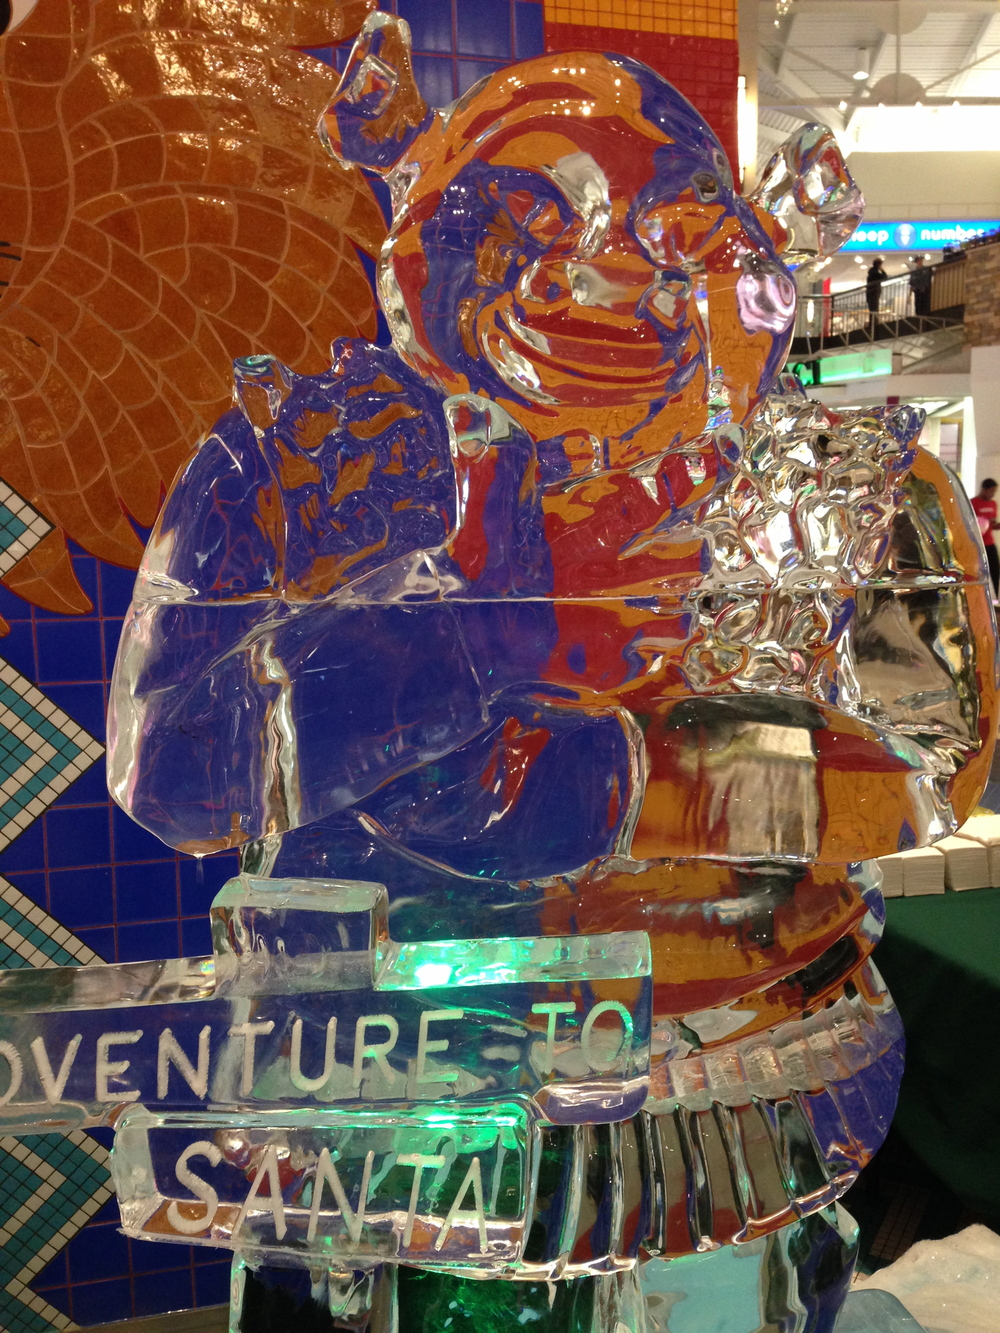 Shrek Ice sculpture